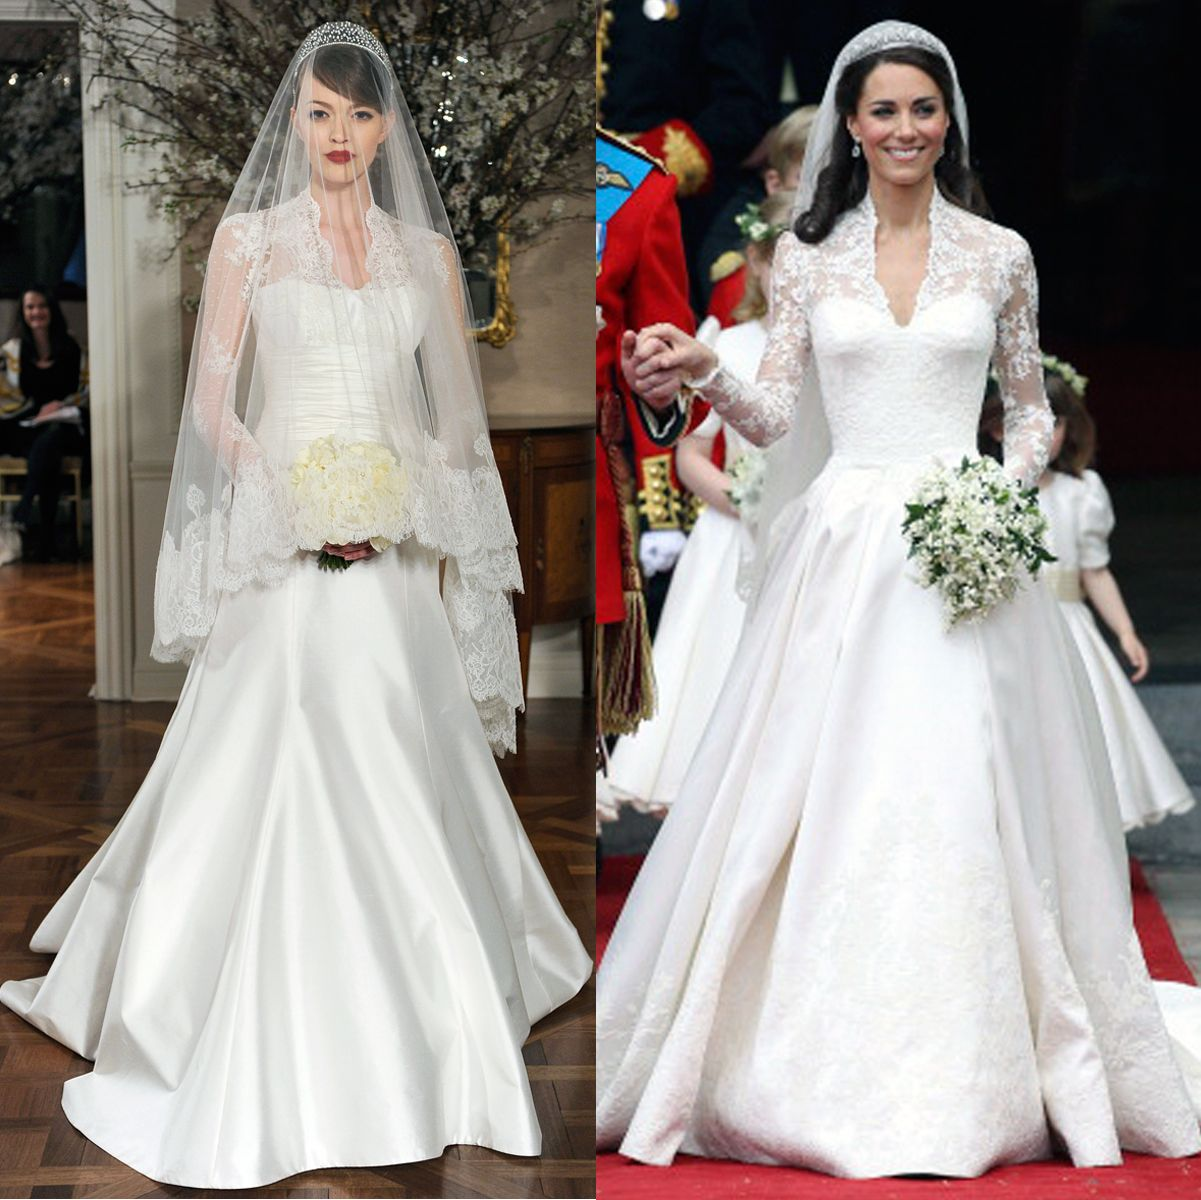 Three royal wedding dresses predicted by romona kevea royal three royal wedding dresses predicted by romona kevea ombrellifo Gallery